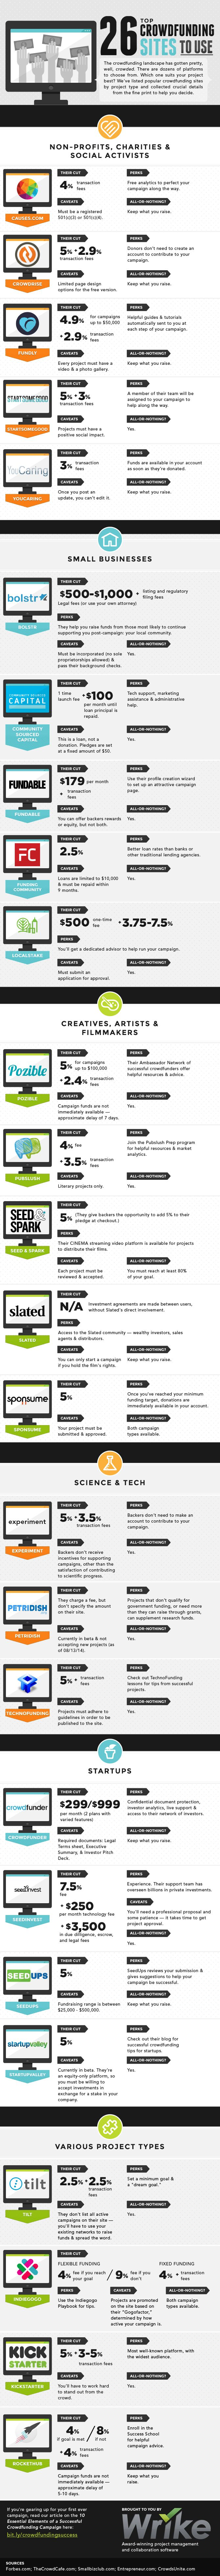 A compilation of the top crowdfunding sites and their important statistics.